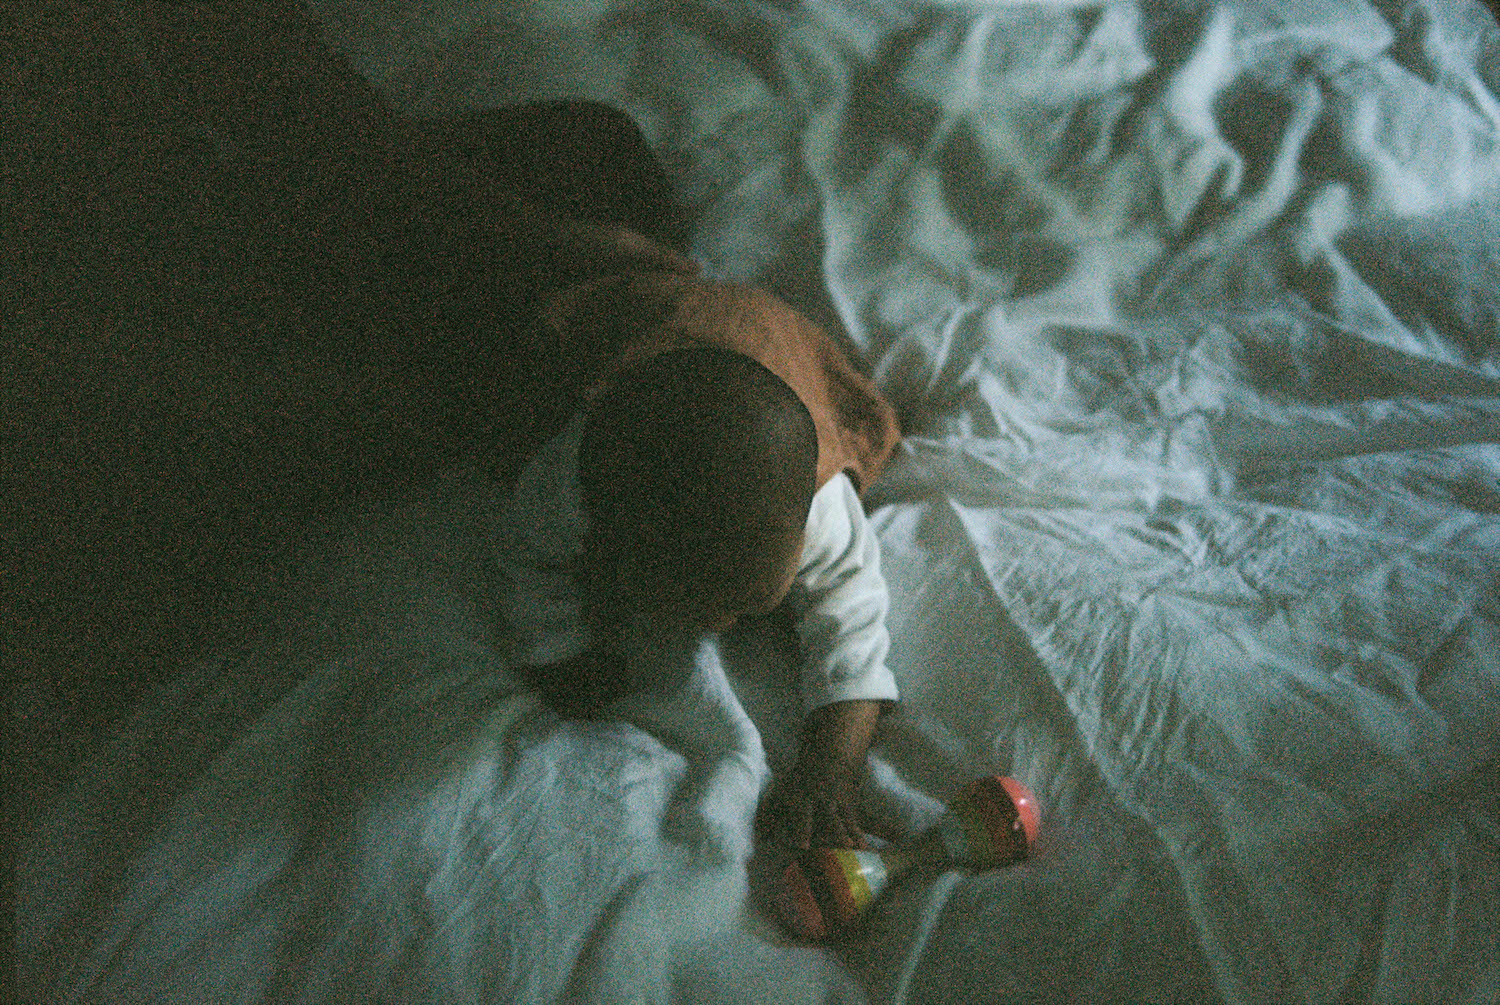 Baby Alexa playing with her rattle, as photographed at her home, on film in Perth.